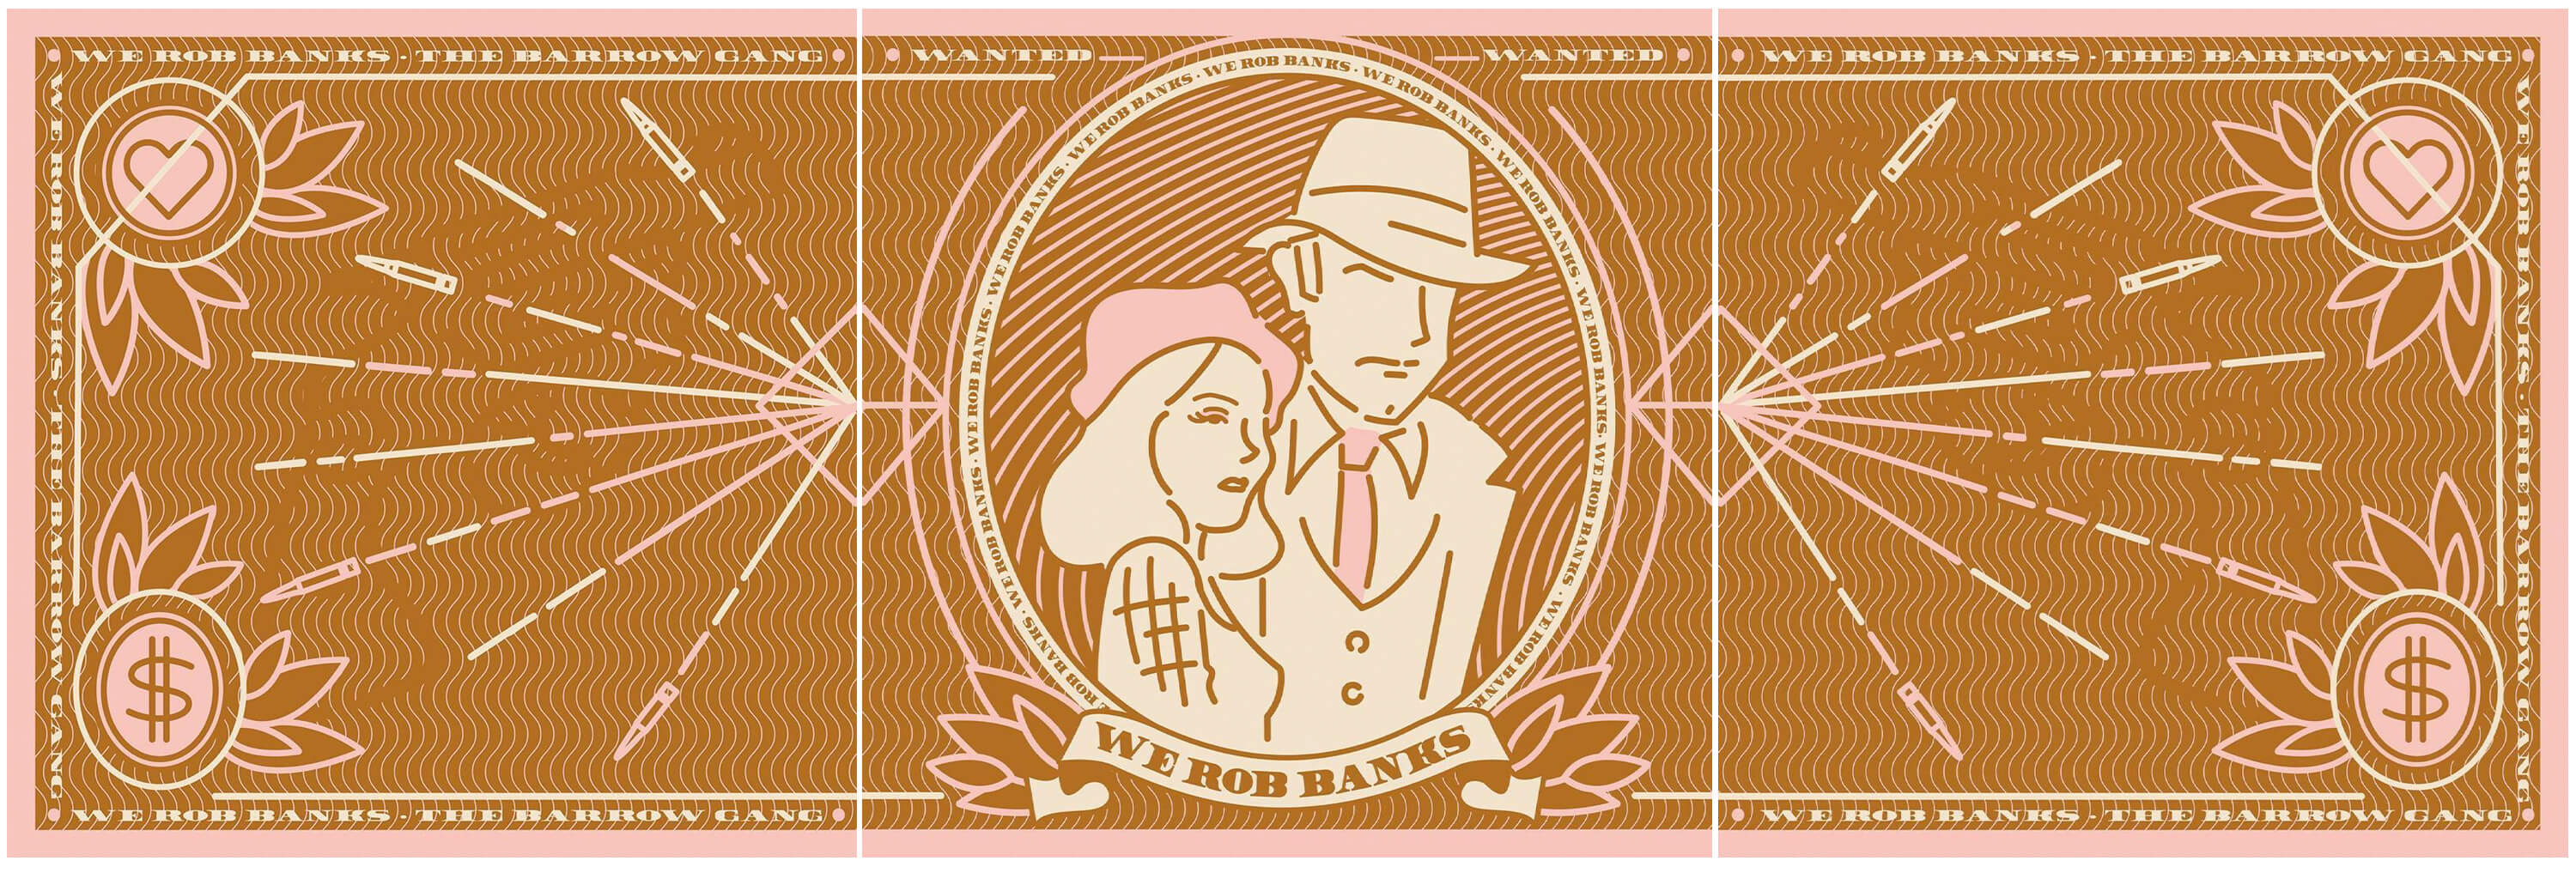 Jacober Creative IRL In Reel Life Bonnie & Clyde Illustration